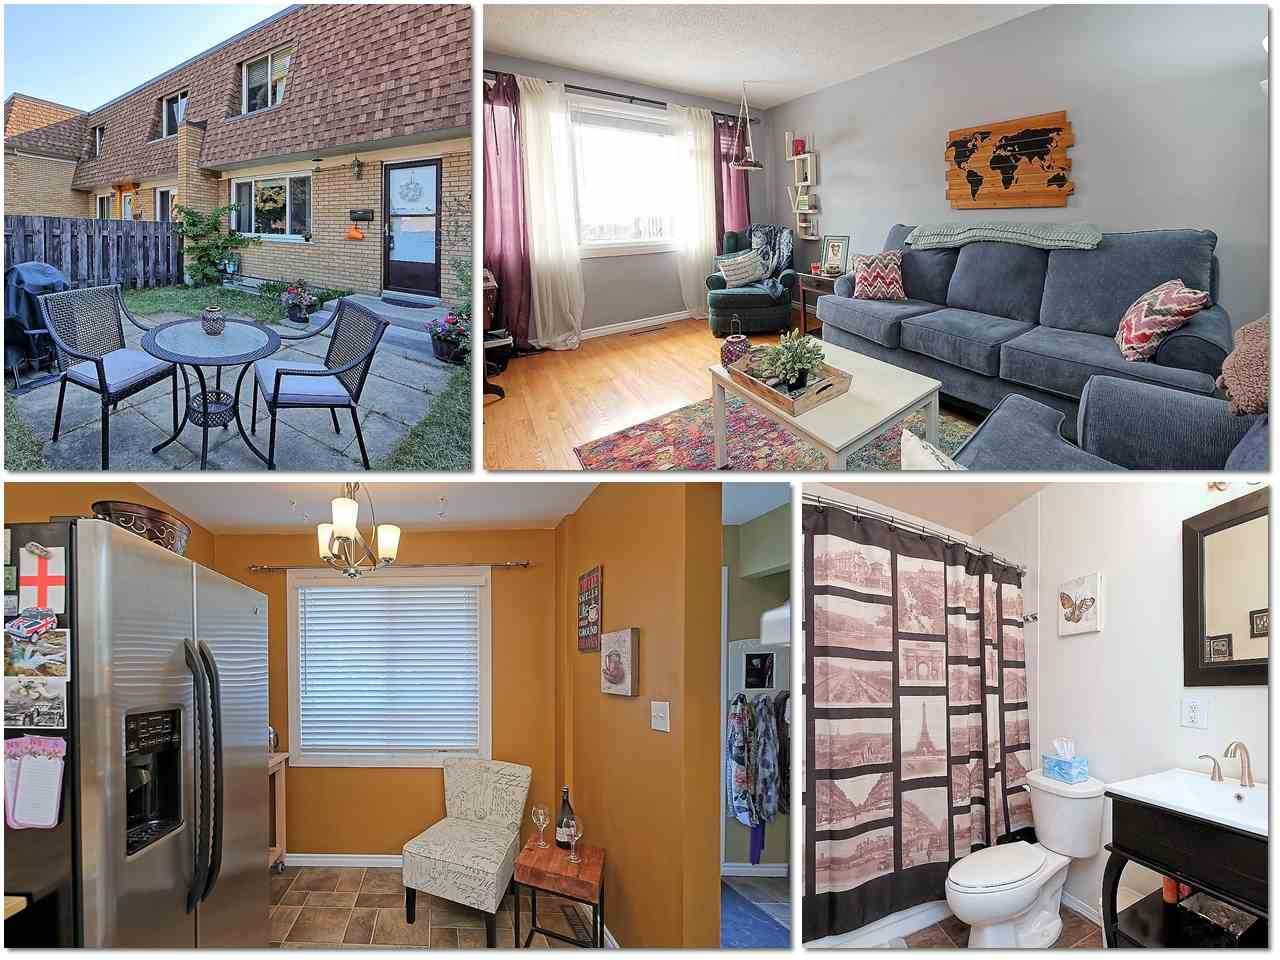 Main Photo: 198 LONDONDERRY Square in Edmonton: Zone 02 Townhouse for sale : MLS®# E4119628